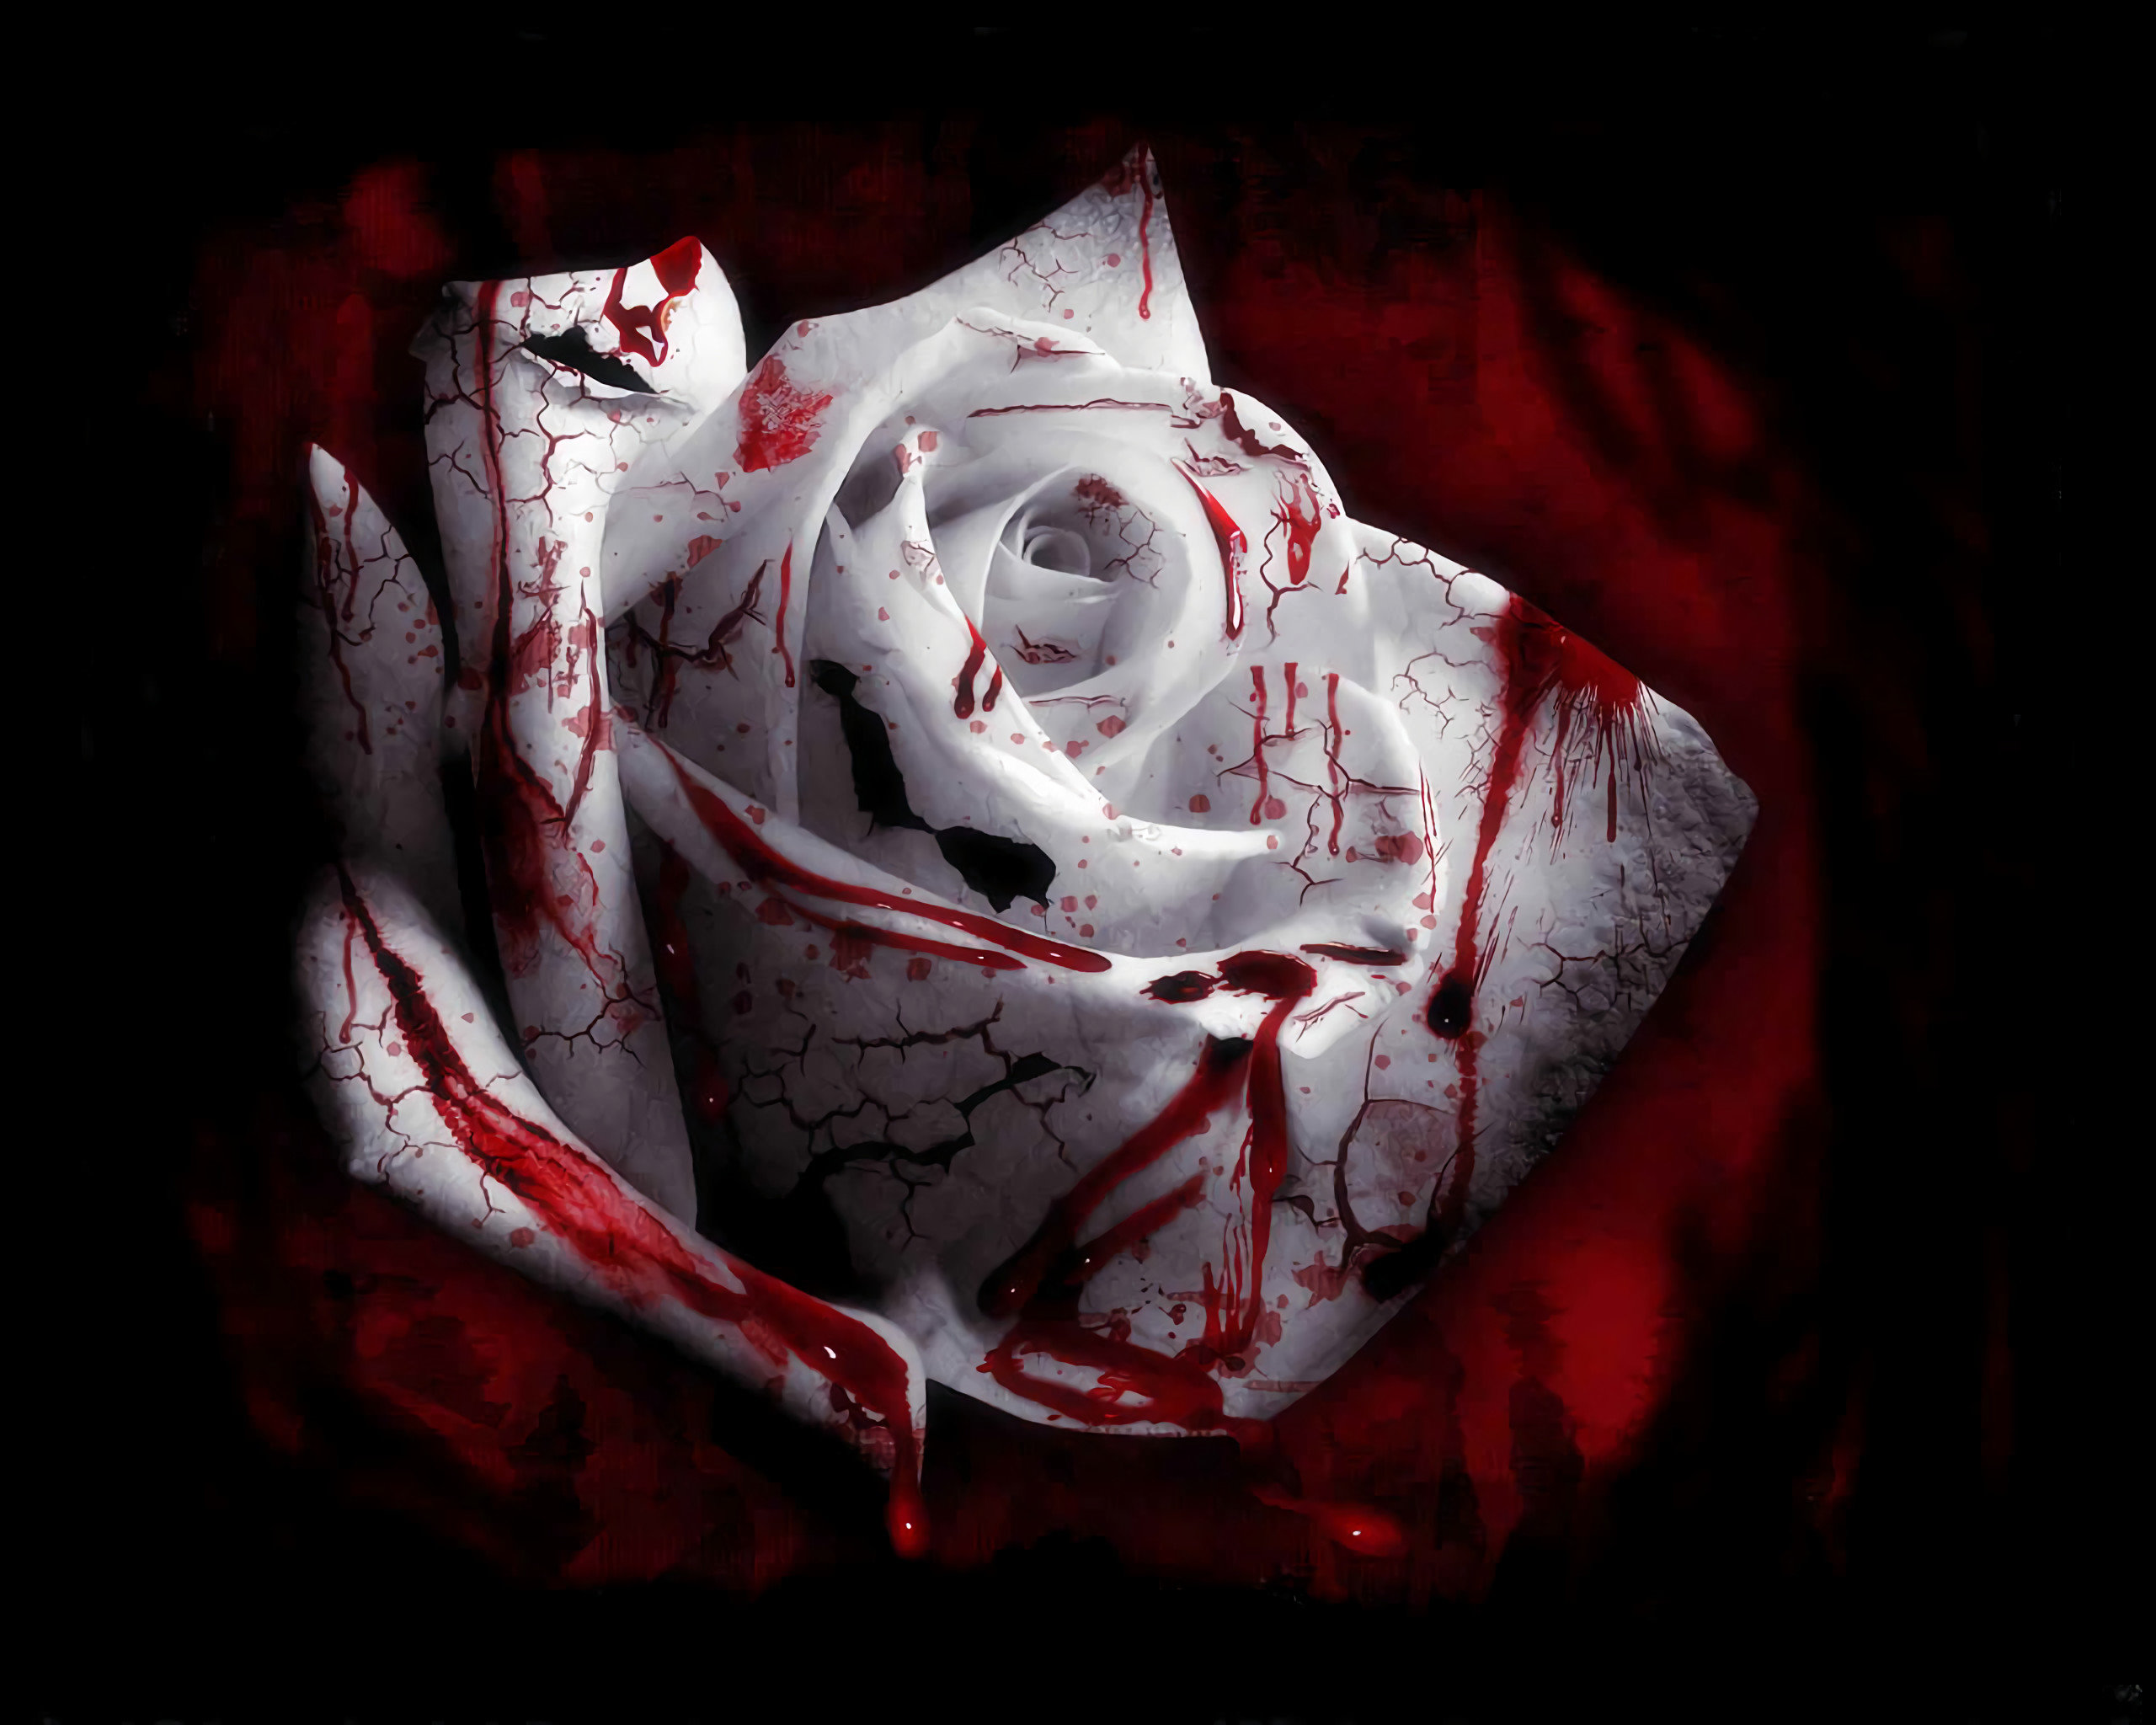 Blood wallpapers HD for desktop backgrounds 2560x2048